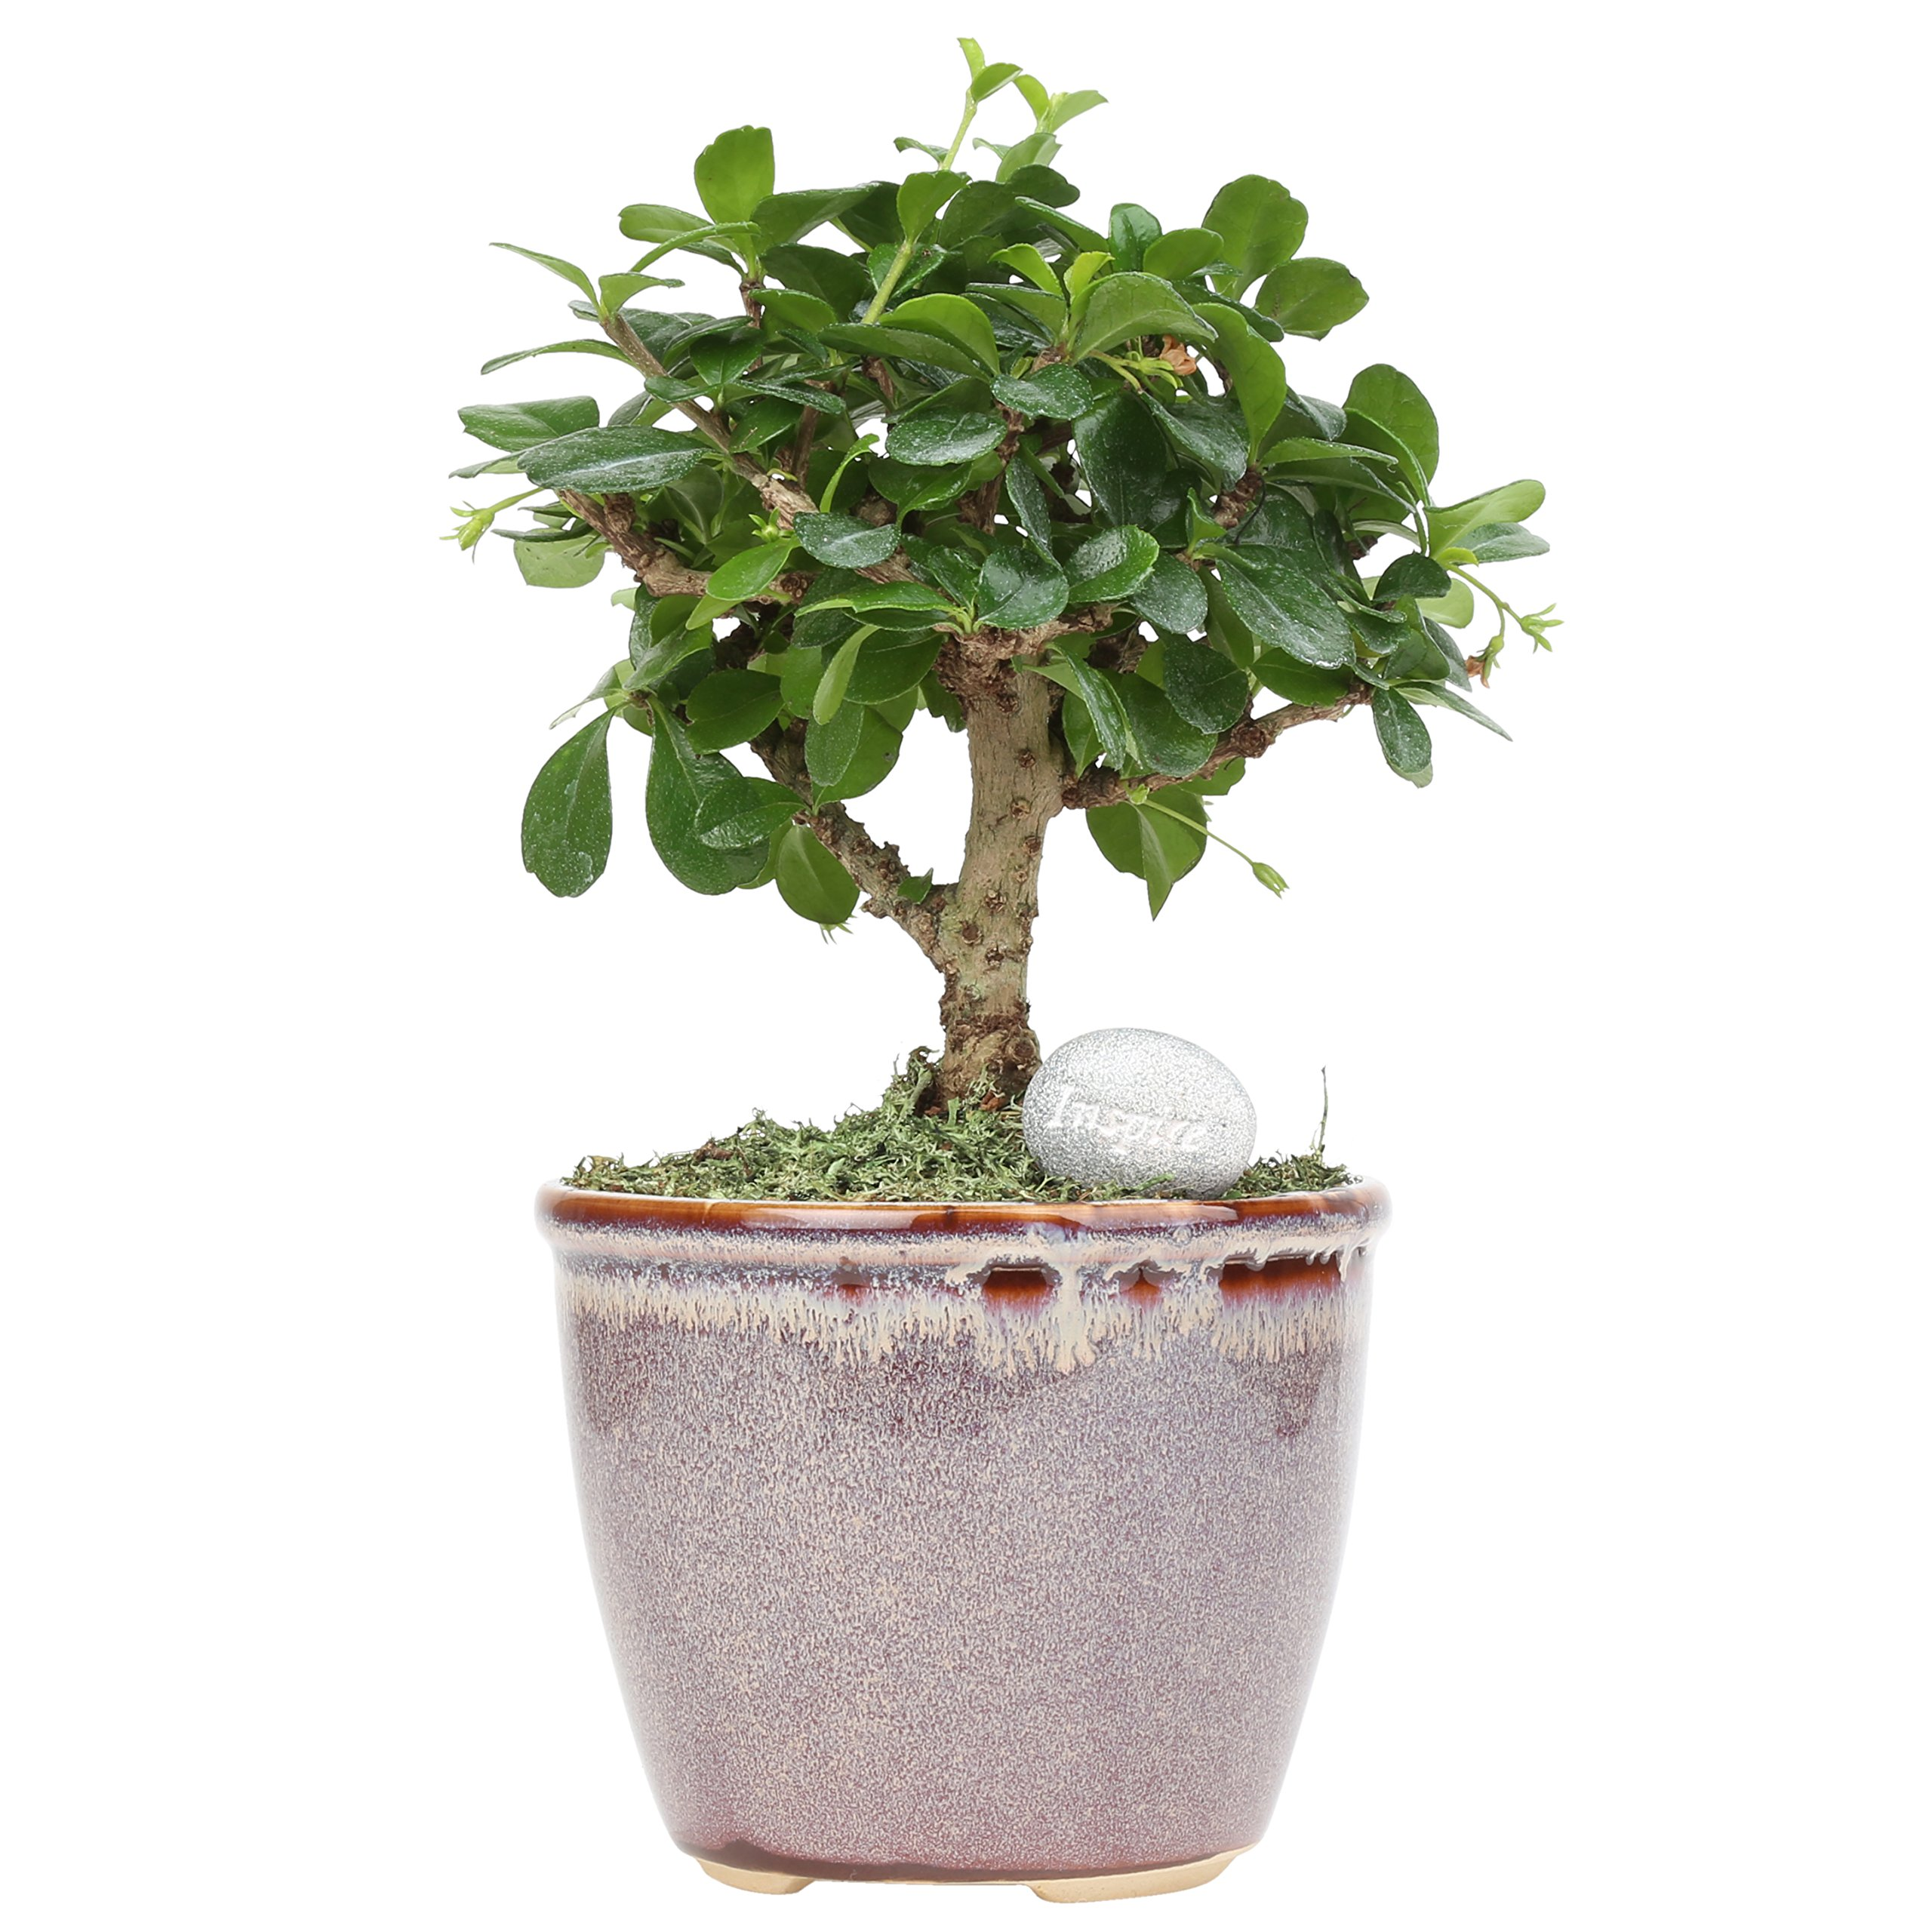 Costa Farms Mini Bonsai Ficus Fukien Tea Live Indoor Tree with Inspirational Message in Mocha Home Décor-Ready Ceramic Planter, Great Gift by Costa Farms